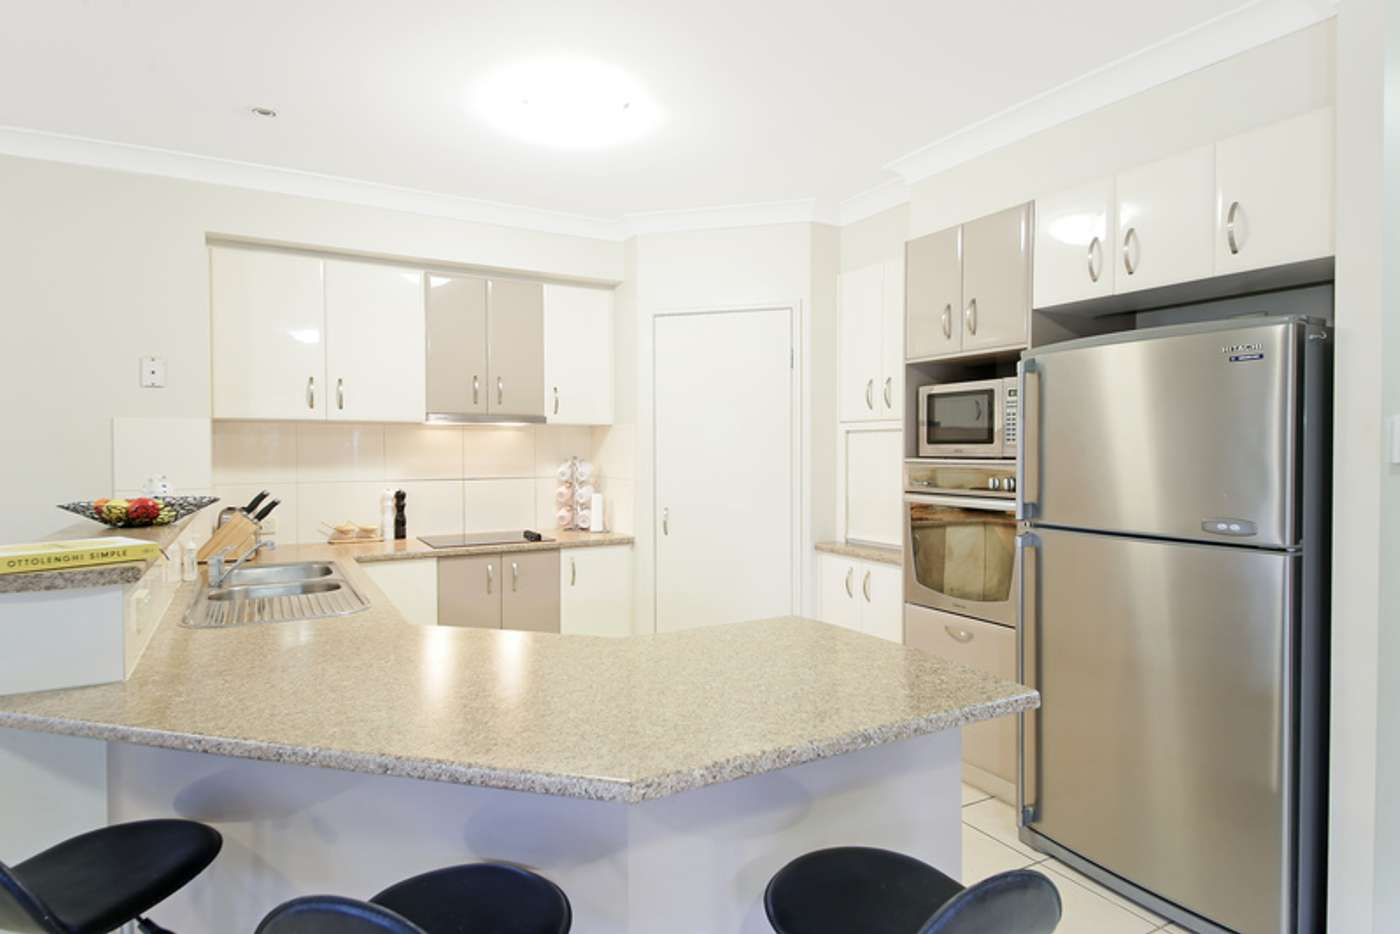 Sixth view of Homely house listing, 9 Tolman St, Sippy Downs QLD 4556